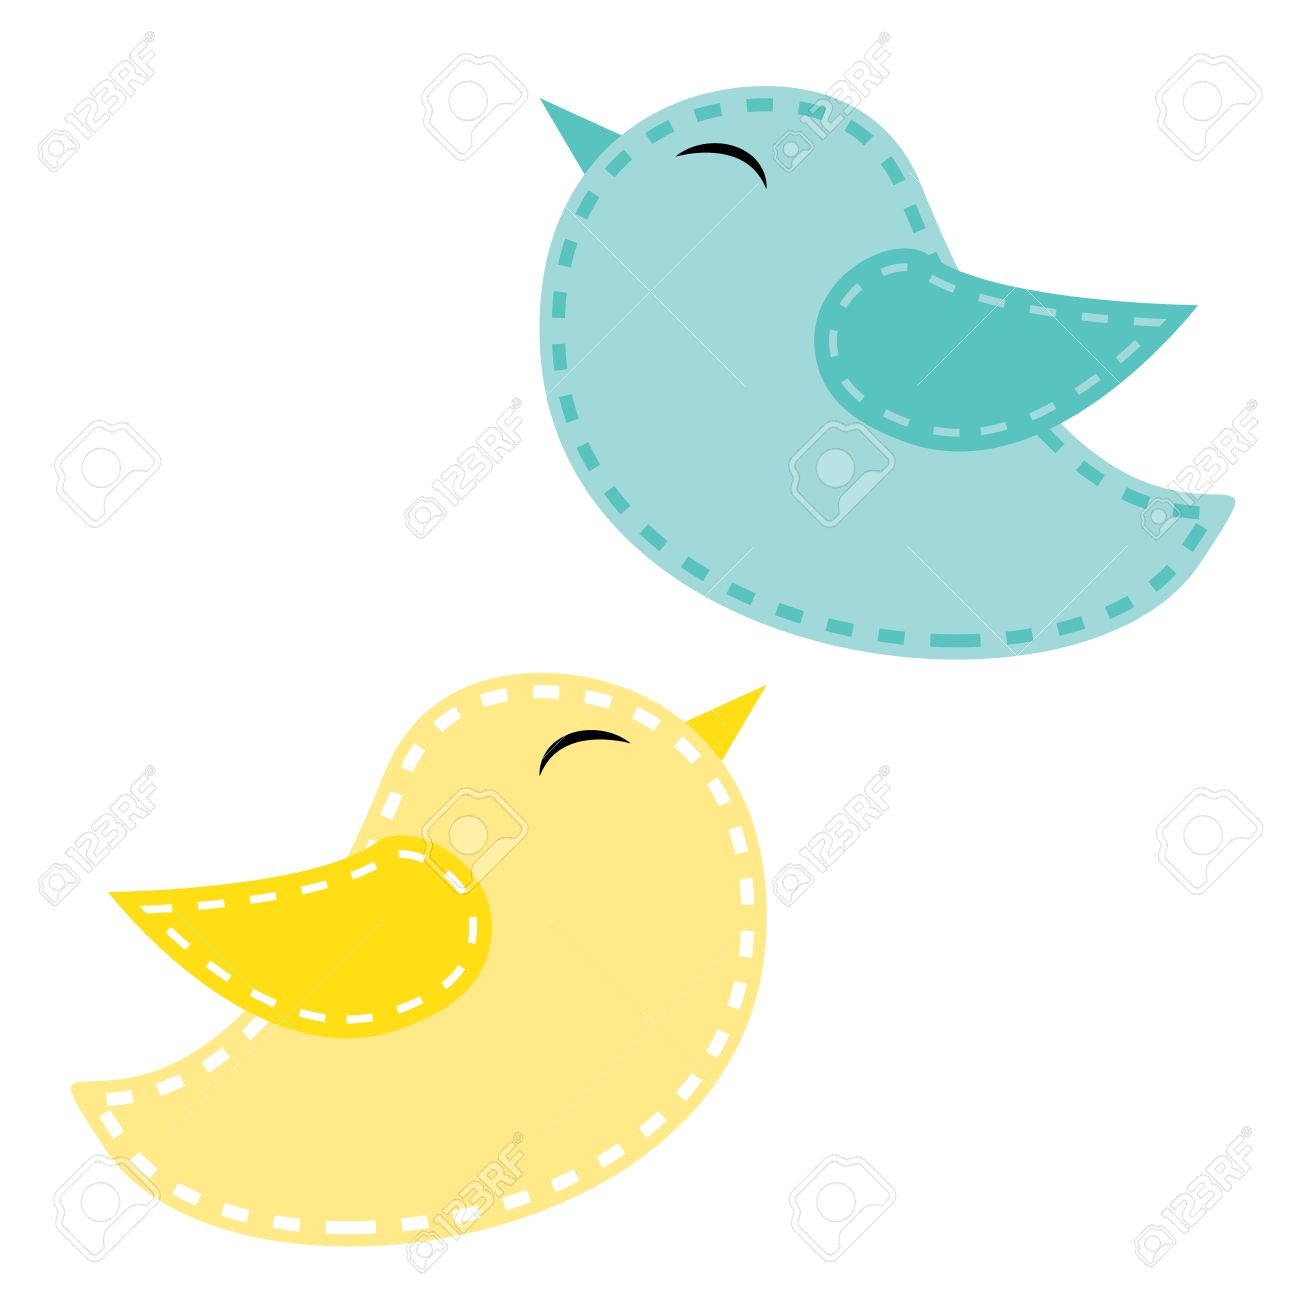 two cute birds blue and yellow on a transparent background rh 123rf com background clipart of a roadmap background clipart pastor anniversary